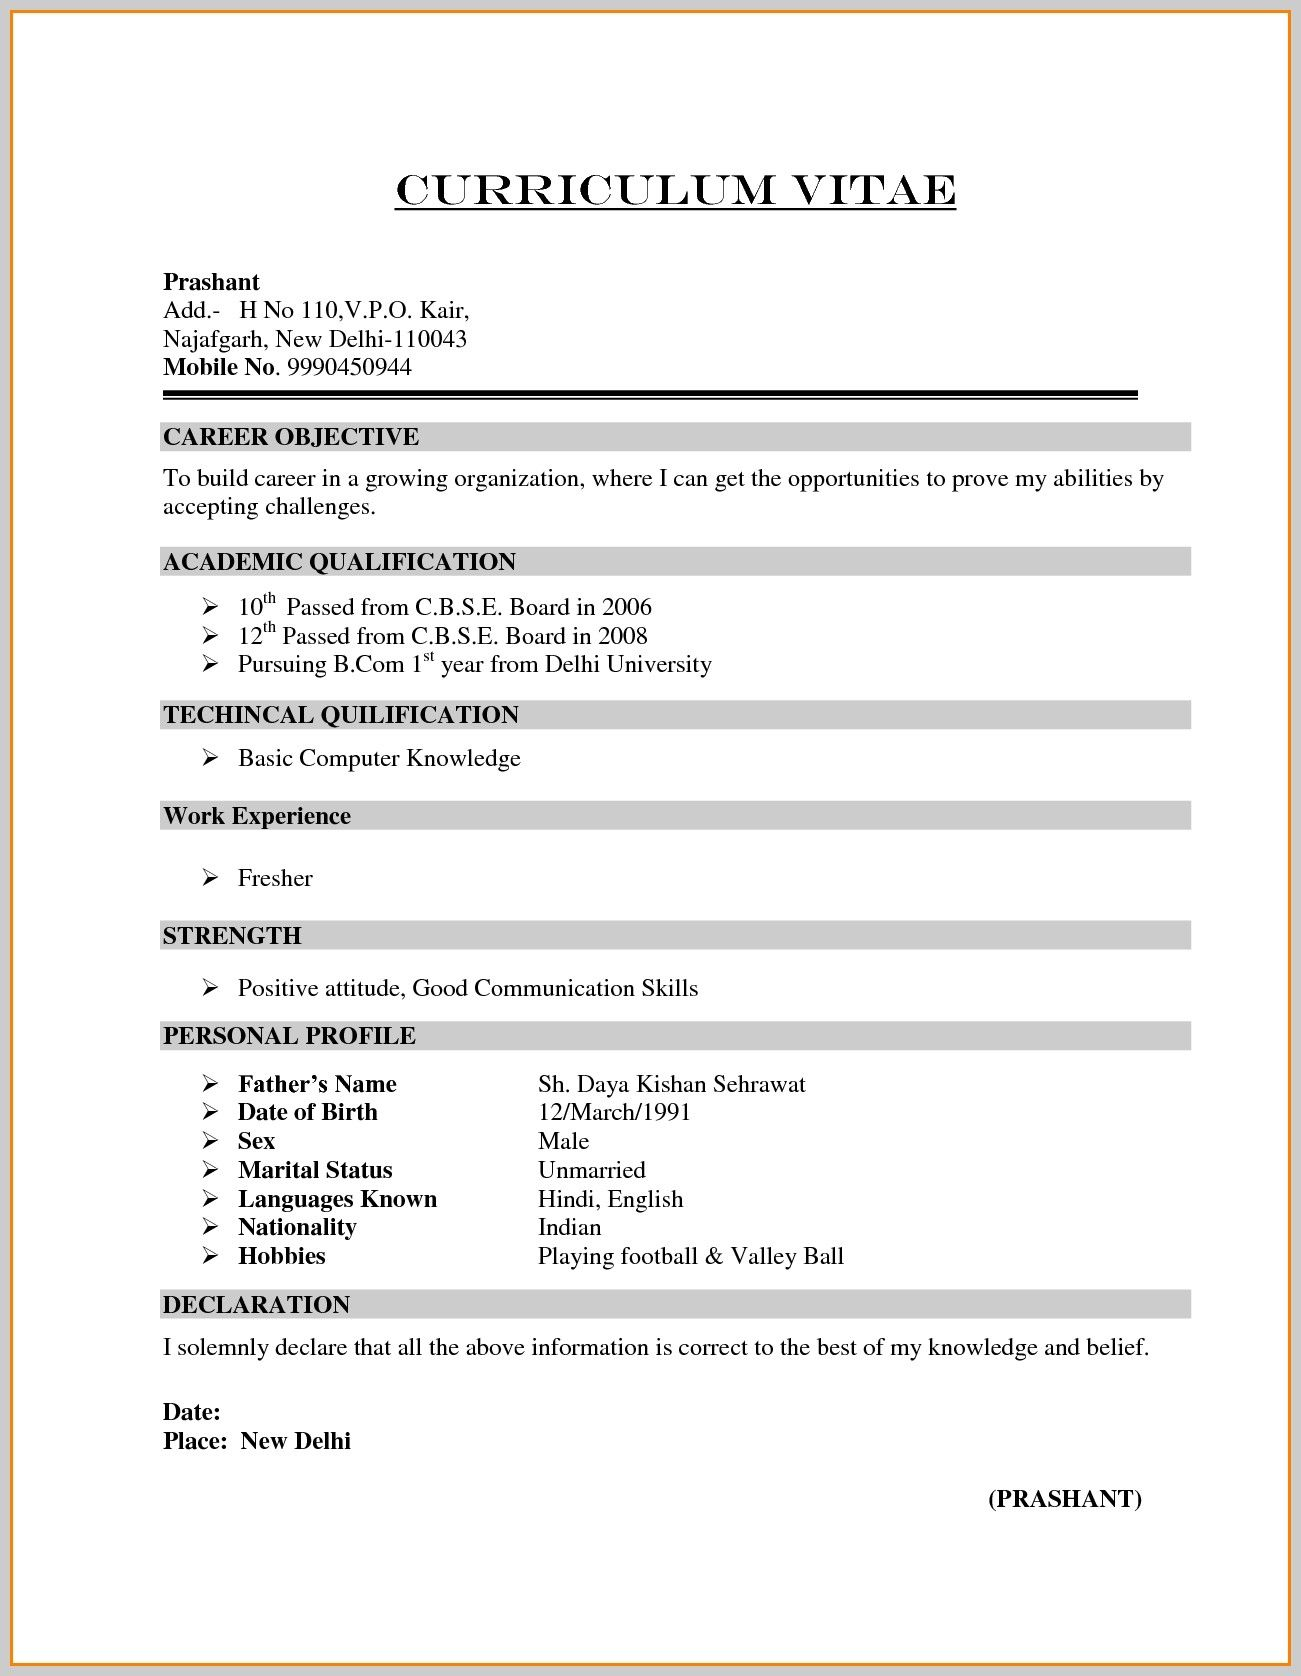 image result for resume format bcom freshers sample of fresher great phrases software Resume Resume Of A Bcom Fresher